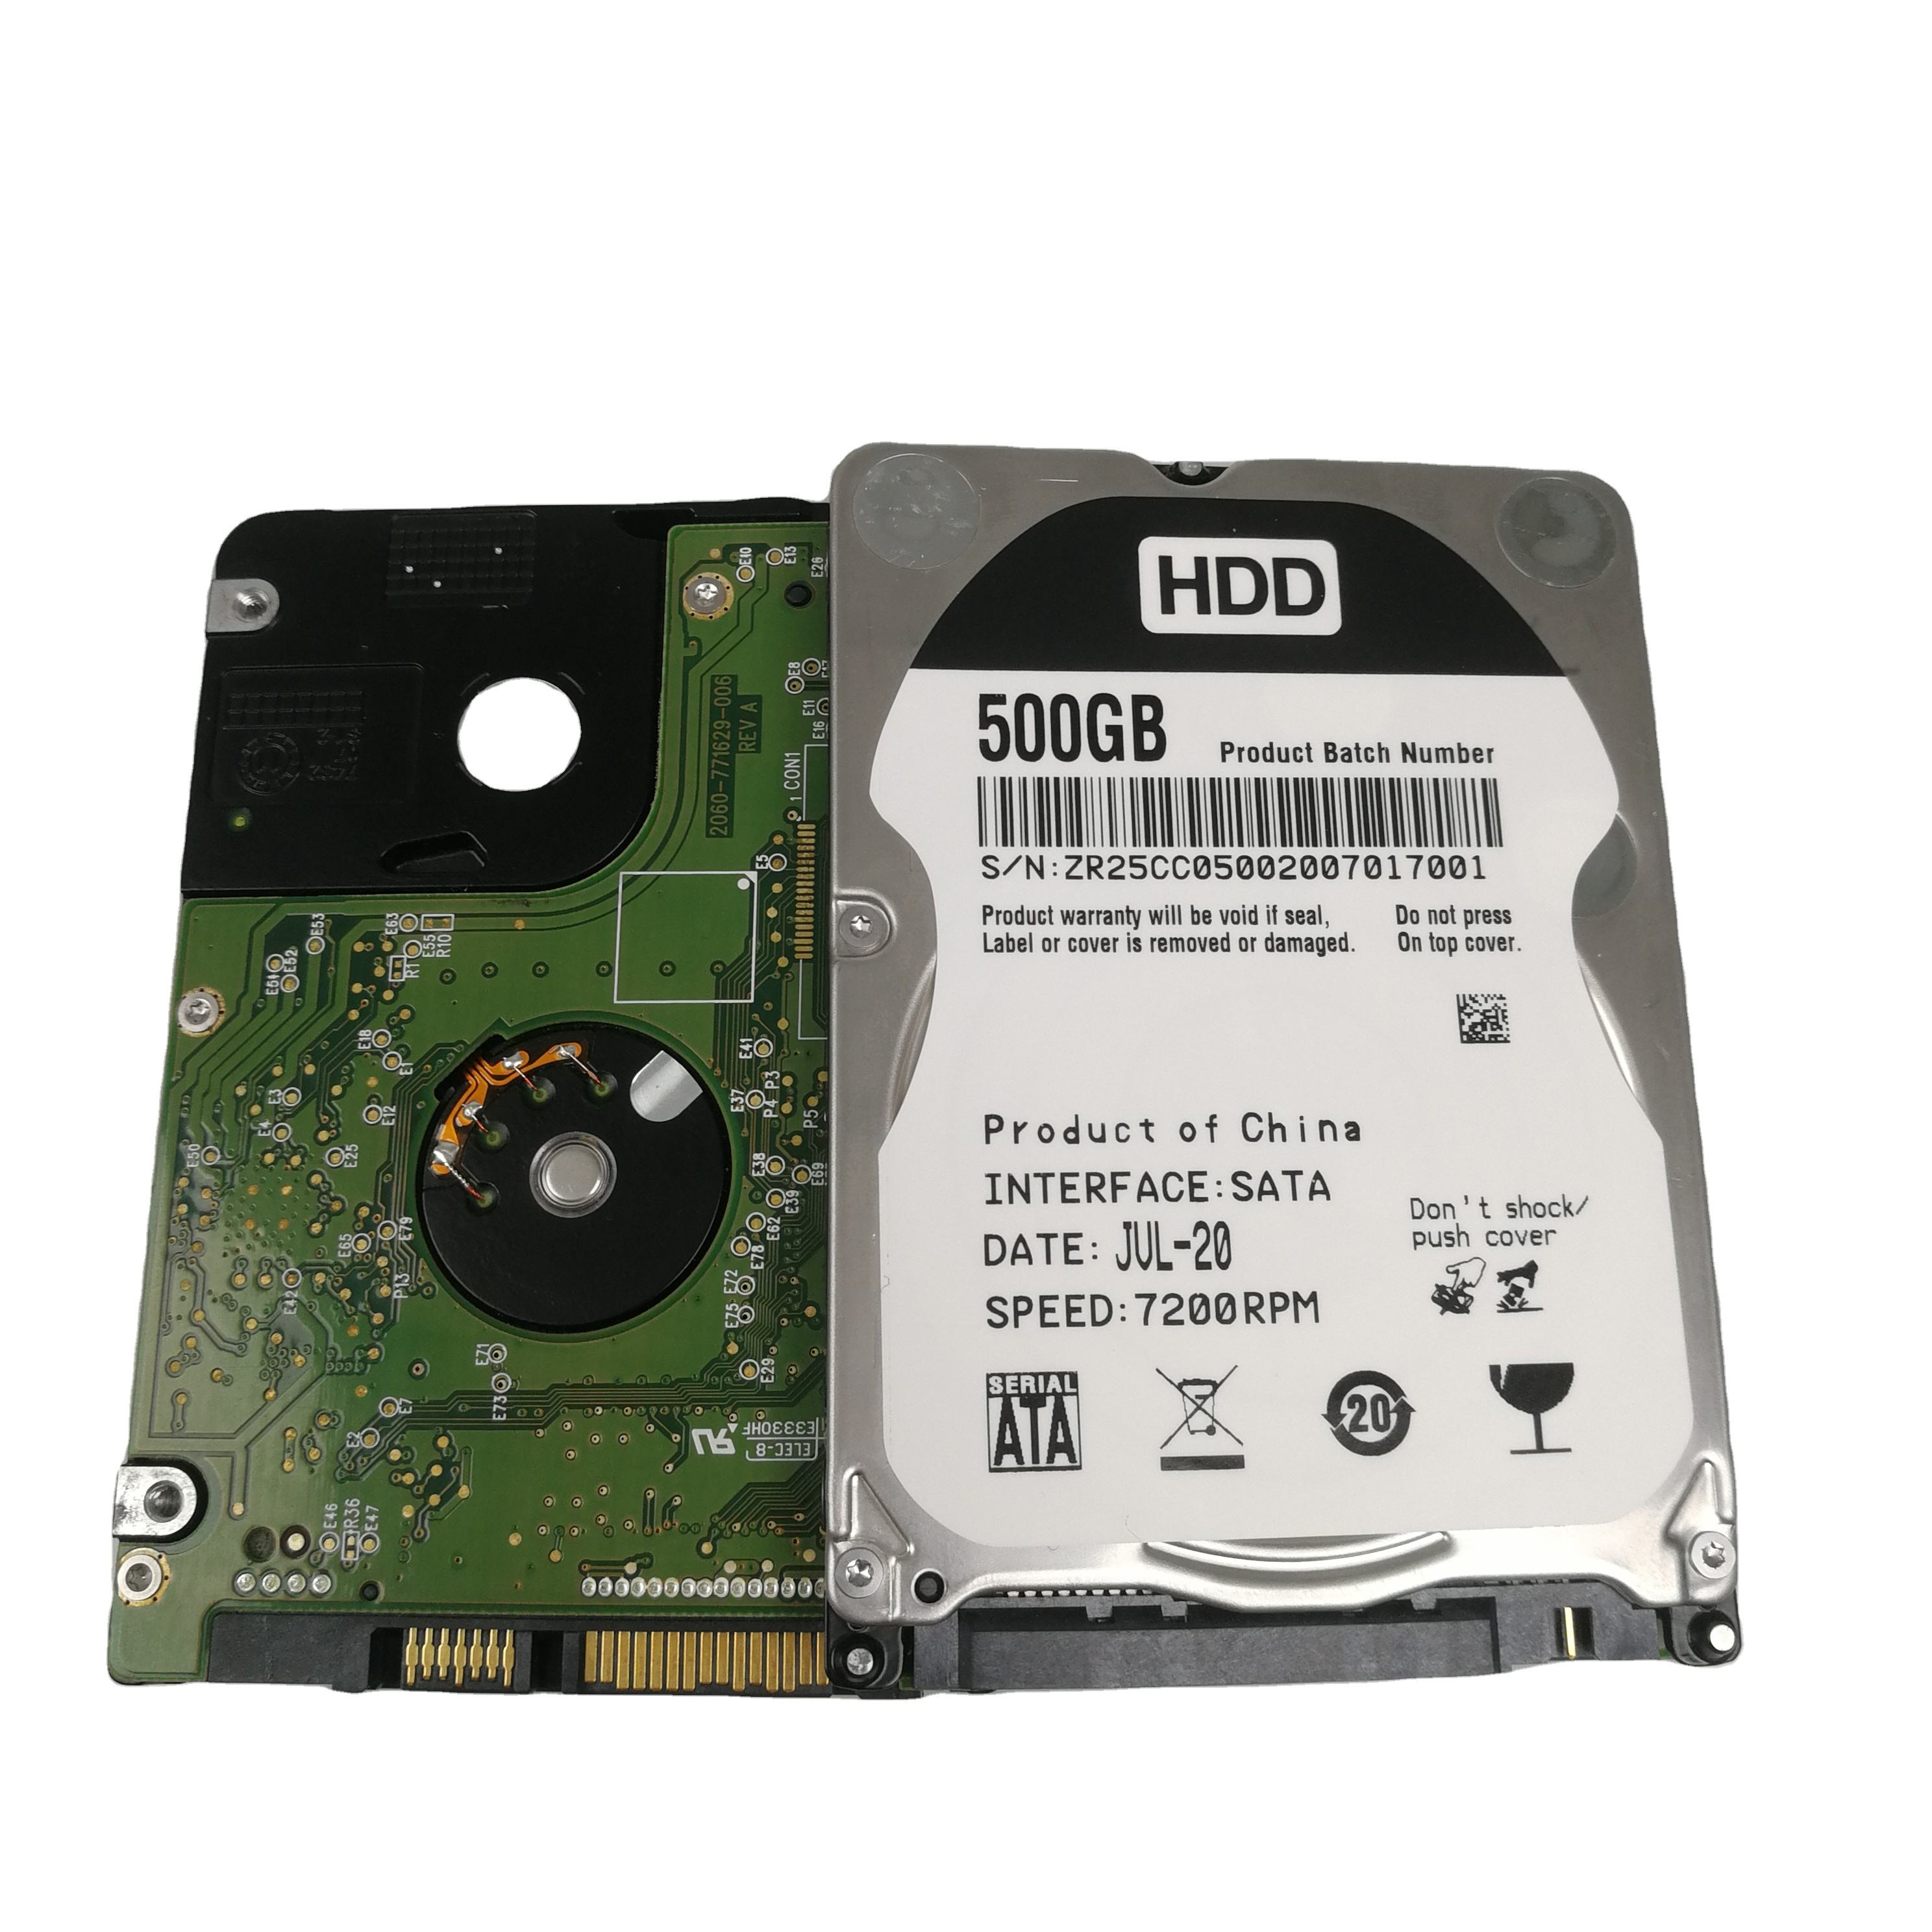 High品質卸売使用hdd 7200rpm 500ギガバイト改装ハードドライブ2.5内蔵hdd